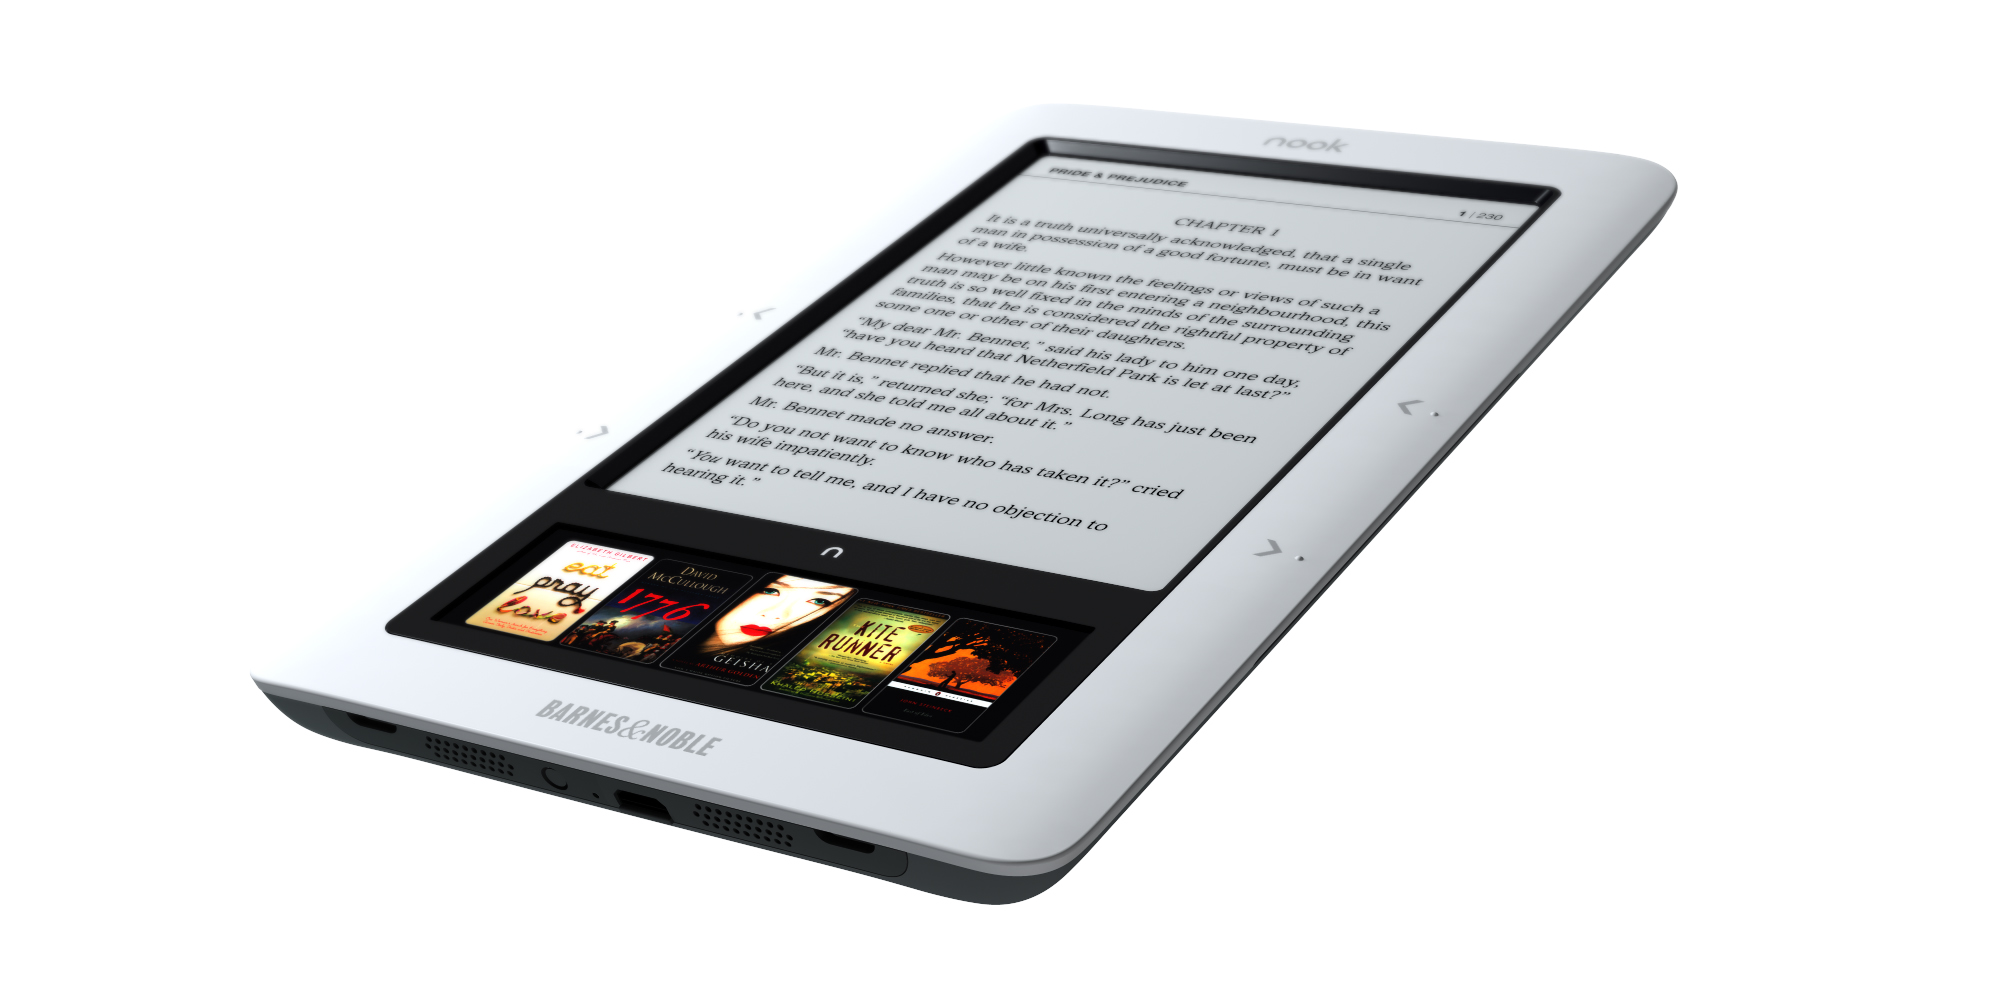 Nook at an angle showing e-ink and color displays